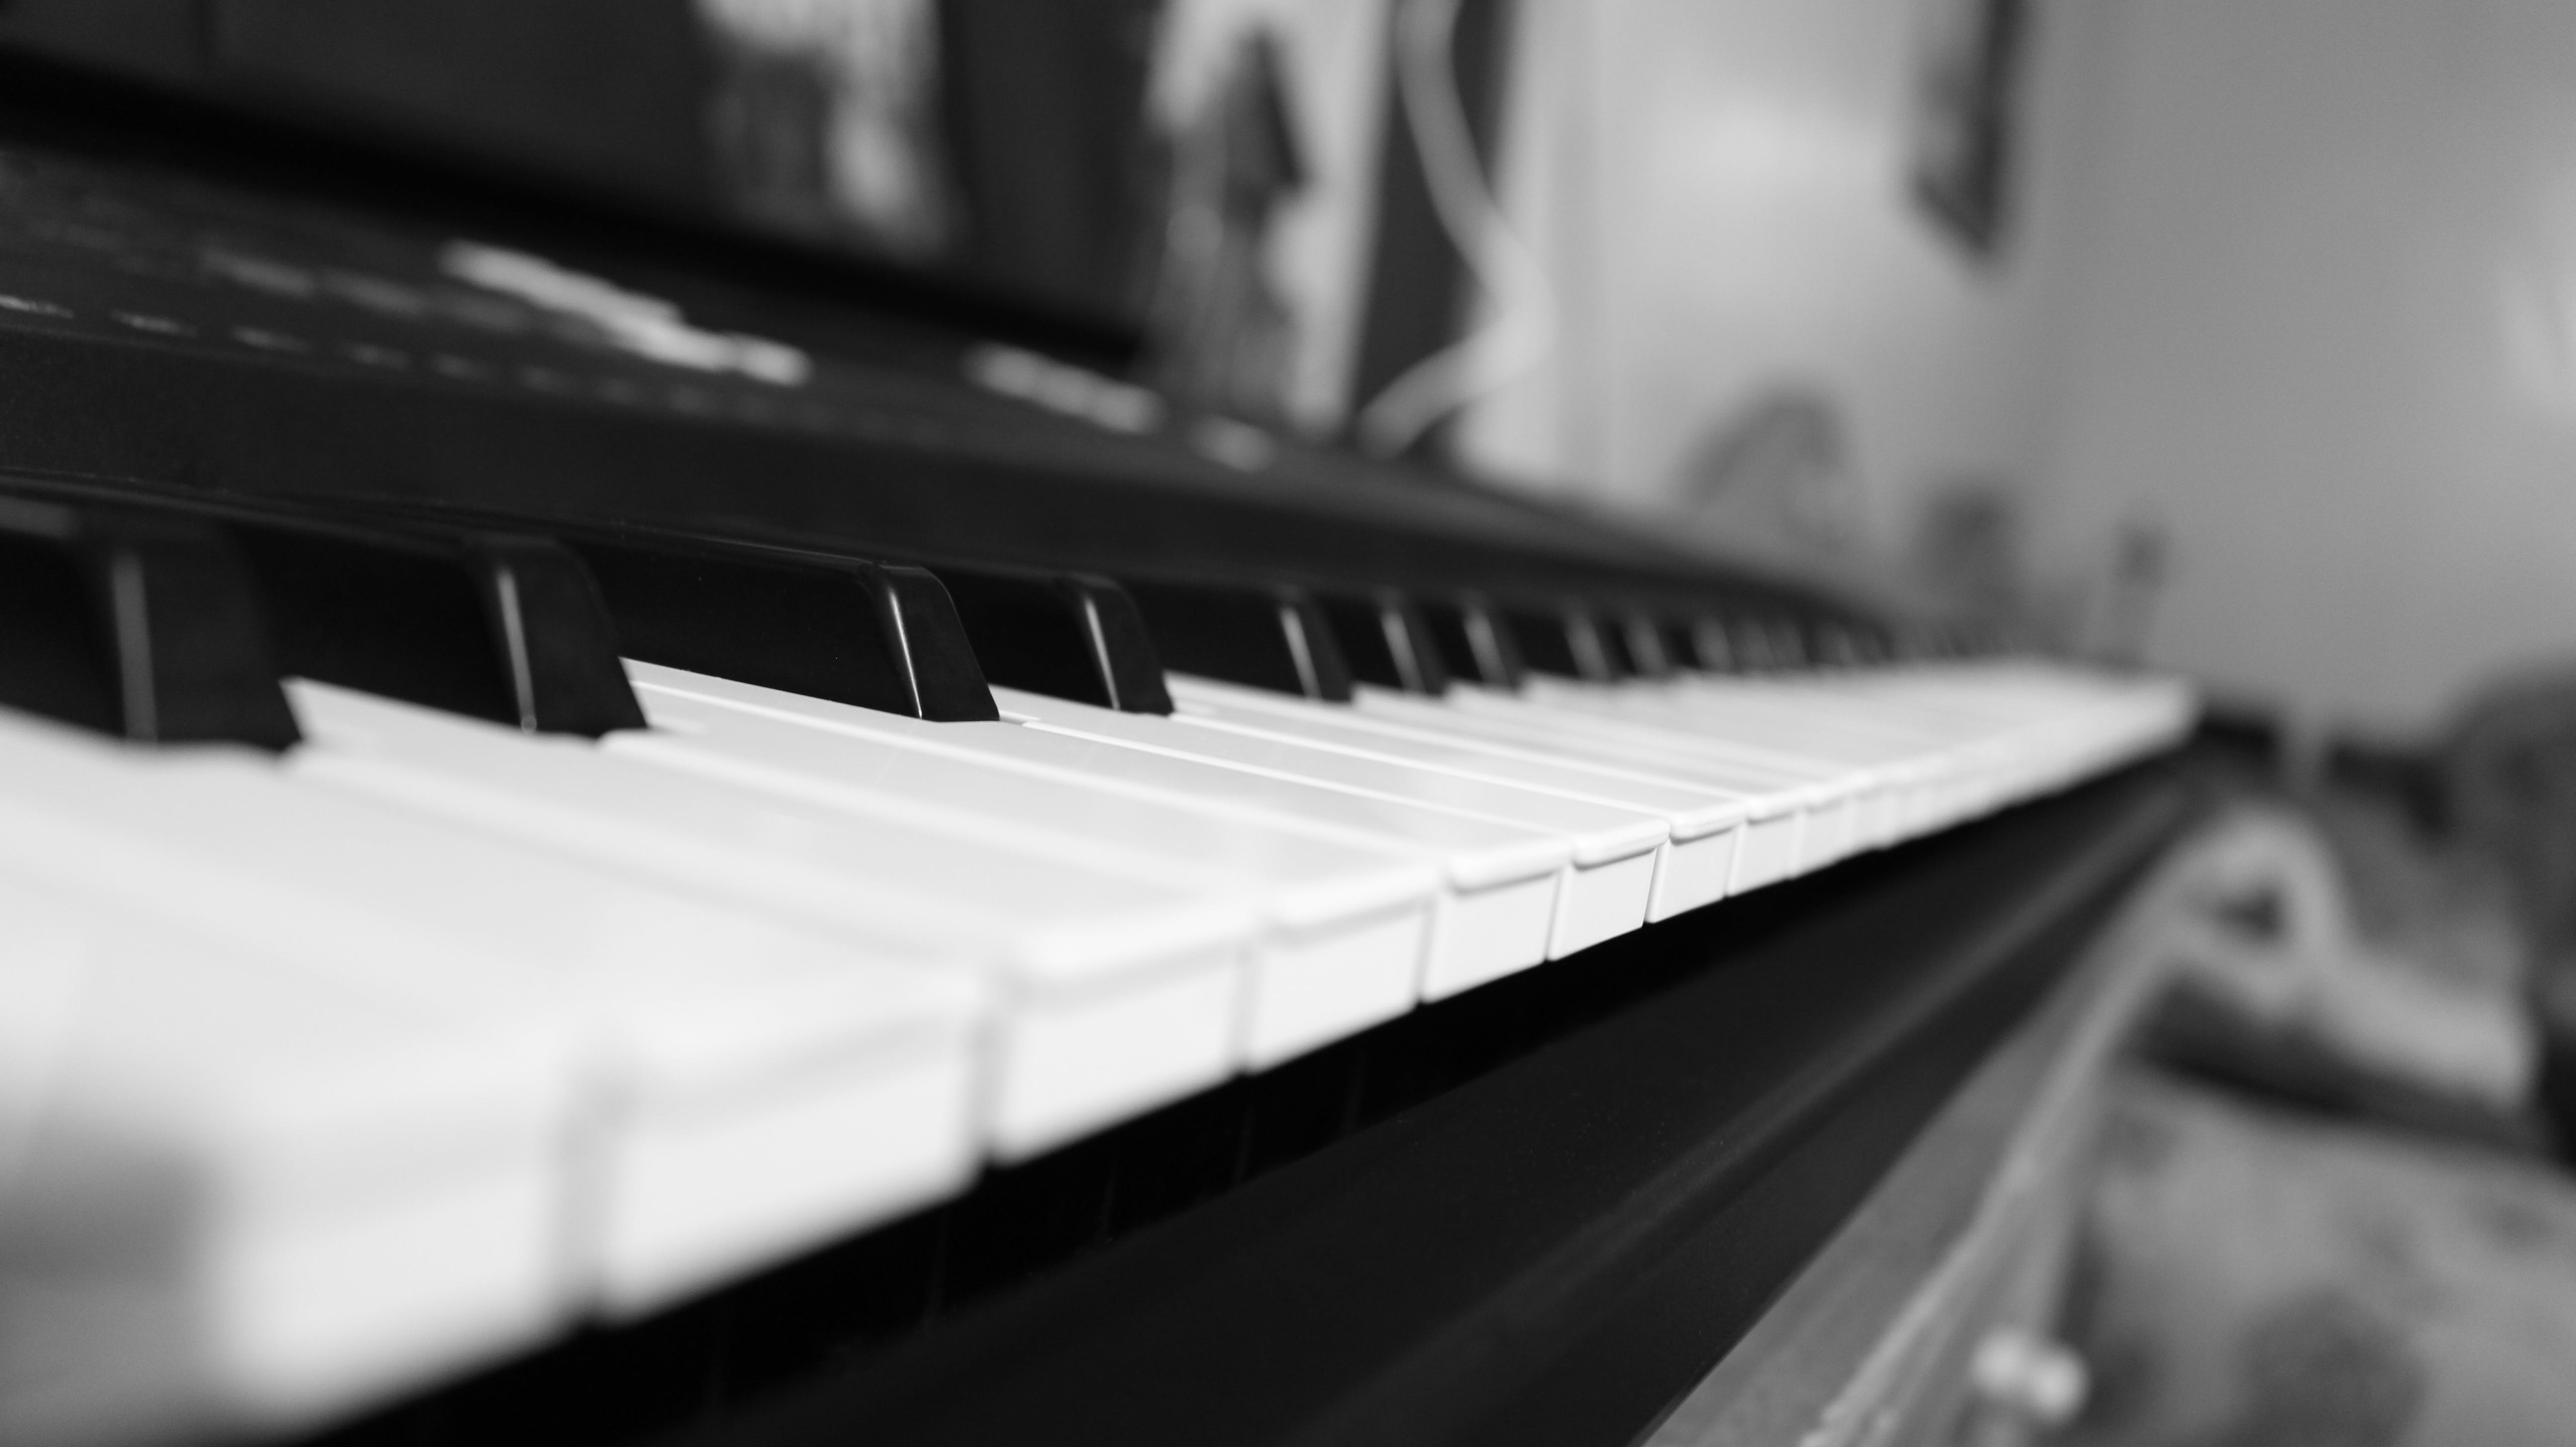 Grayscale Photo of Piano Tiles